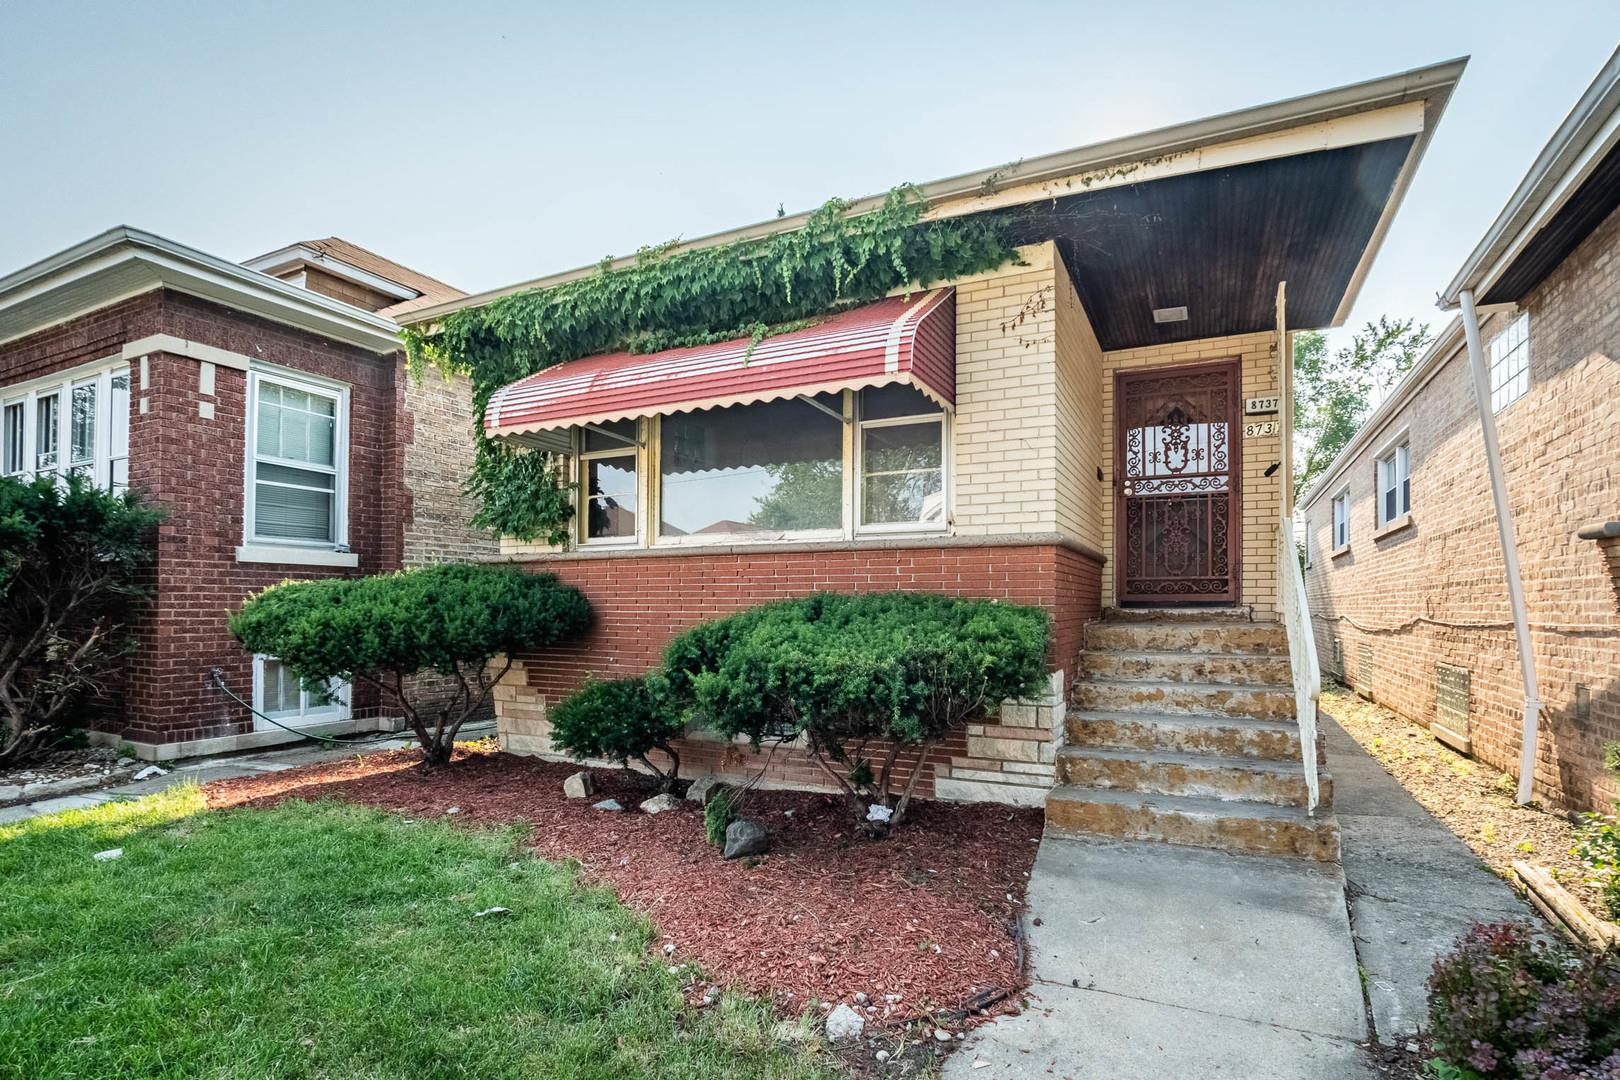 8737 S Honore Street, Chicago, IL 60620 - #: 11142494